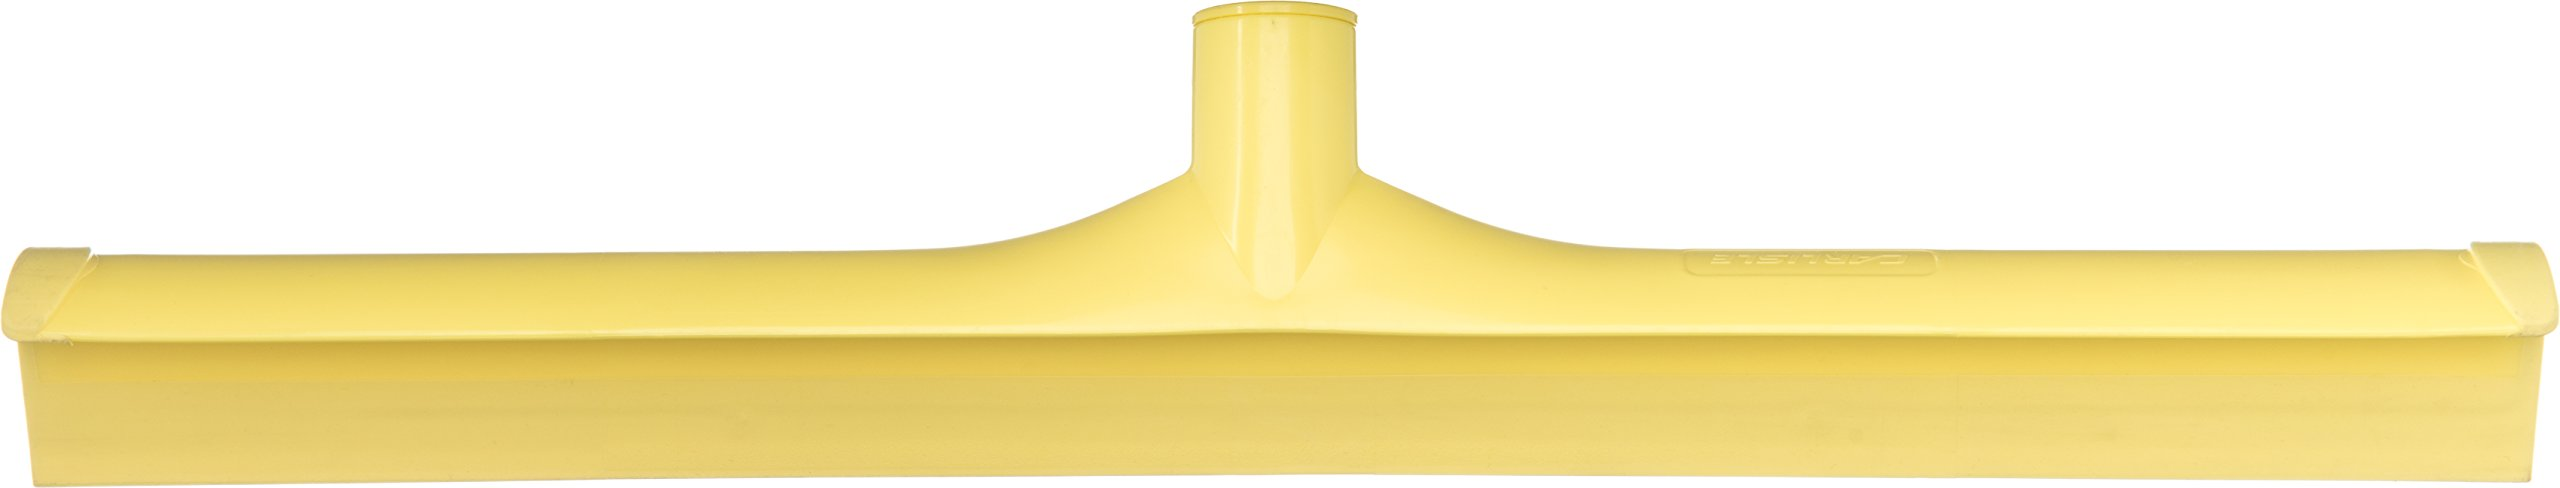 Carlisle 3656704 Solid One-Piece Foam Rubber Head Floor Squeegee, 20'' Length, Yellow (Case of 6)